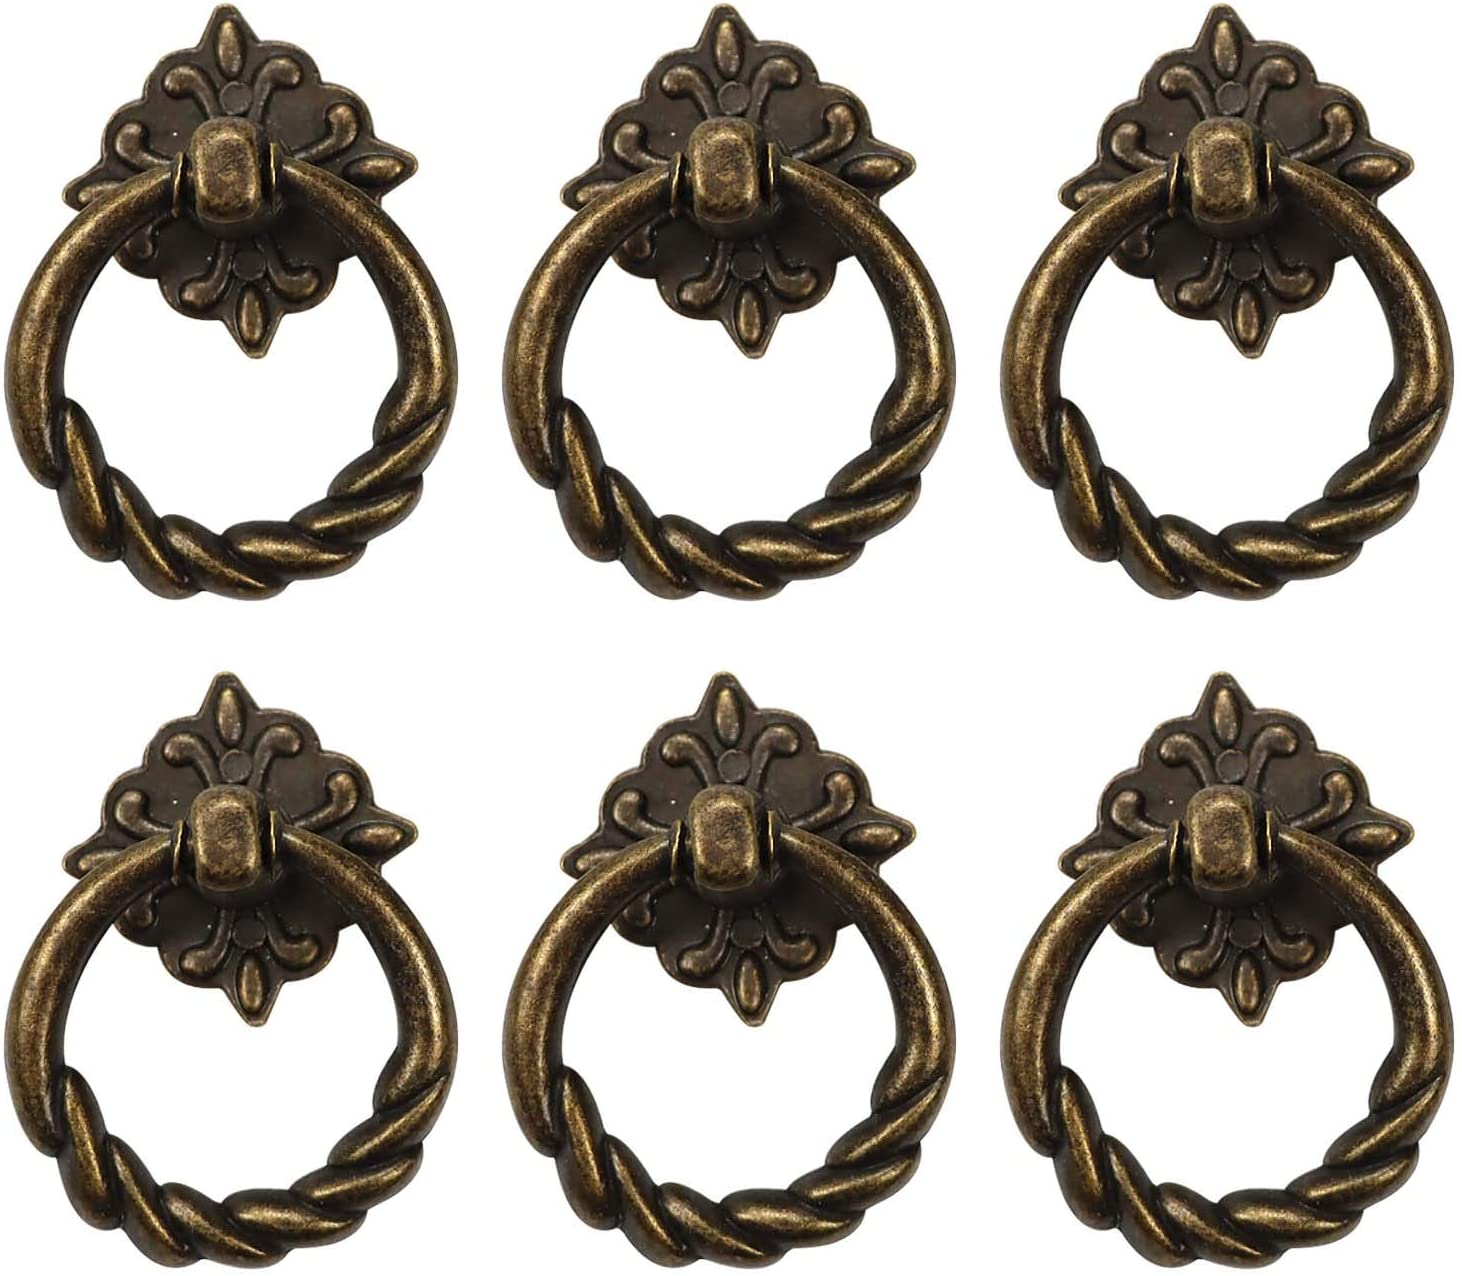 Chris.W 6pcs Vintage Bronze Drop Ring Knobs Pulls Handles for Dresser Drawer Antique Drawer Pull Ring Single Hole Decorative Hardware with Screws for Furniture Cabinet Cupboard